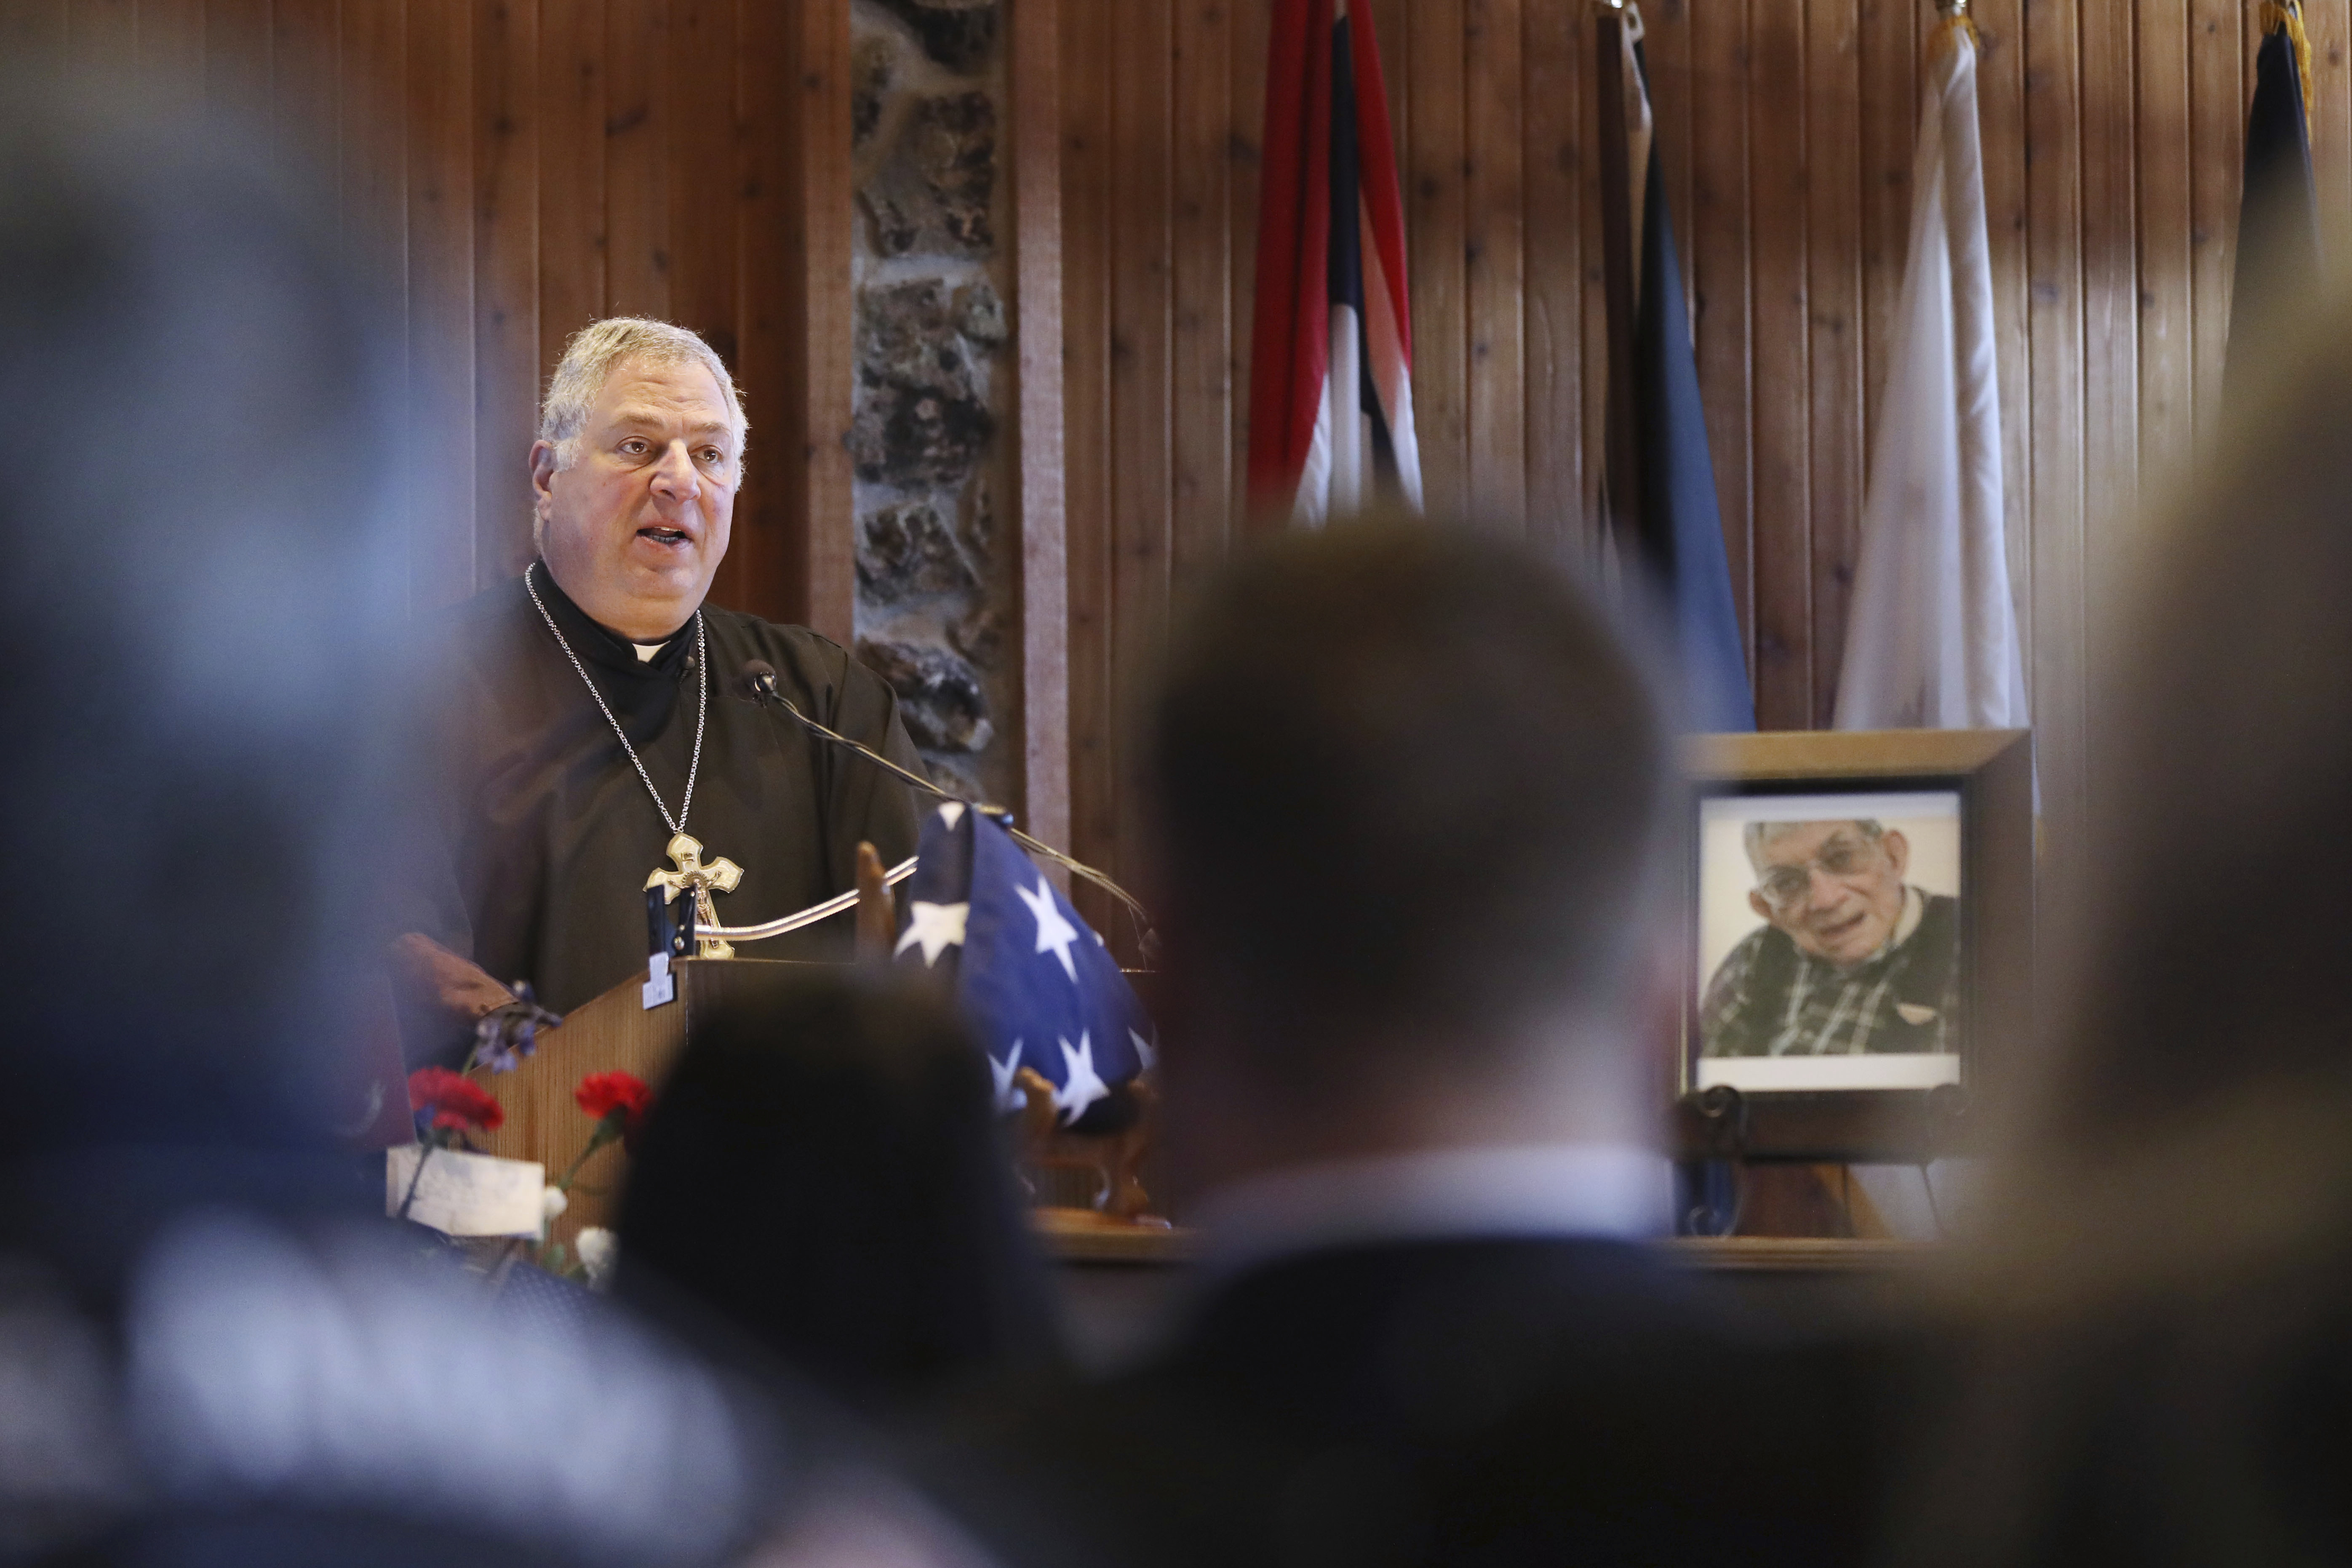 Friar Stephen Ziton officiates the funeral service for WWII Marine veteran Cpl. Remigio